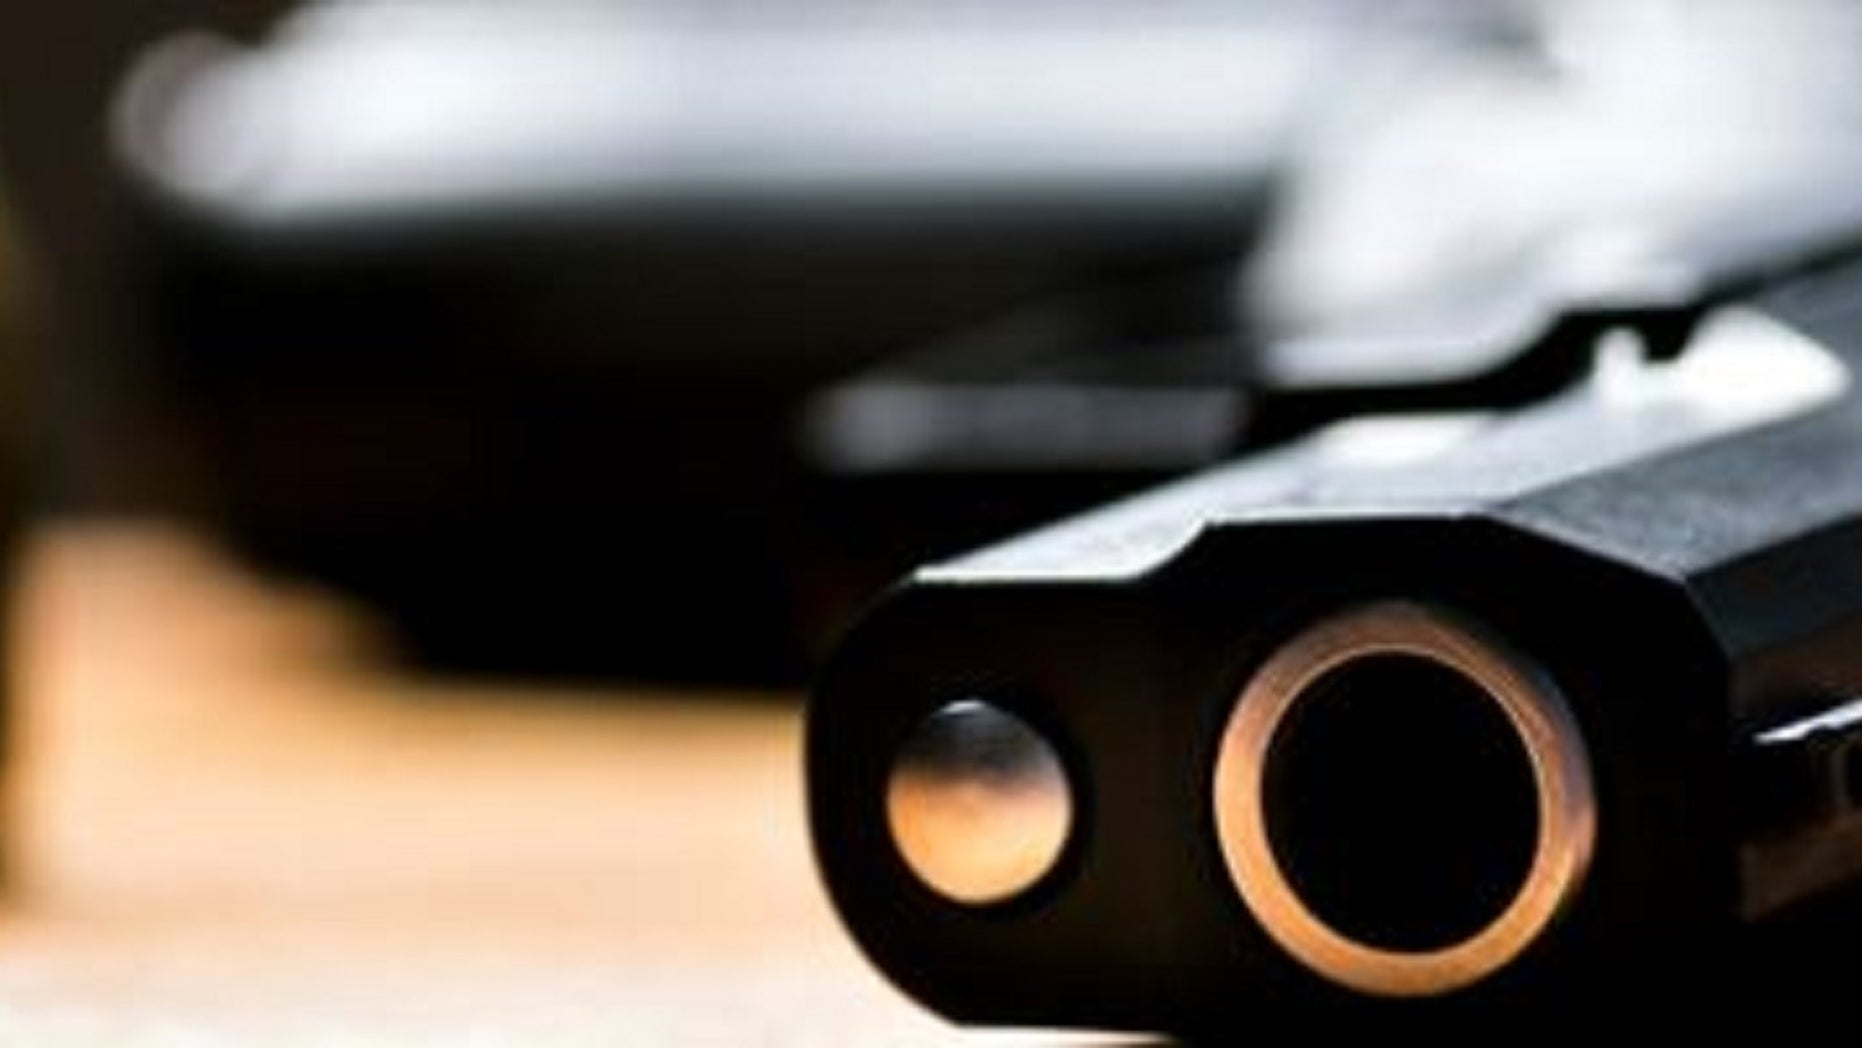 A new study found that gun-related deaths reached an all-time high in 2017 with nearly 40,000 killed by either homicide or suicide.